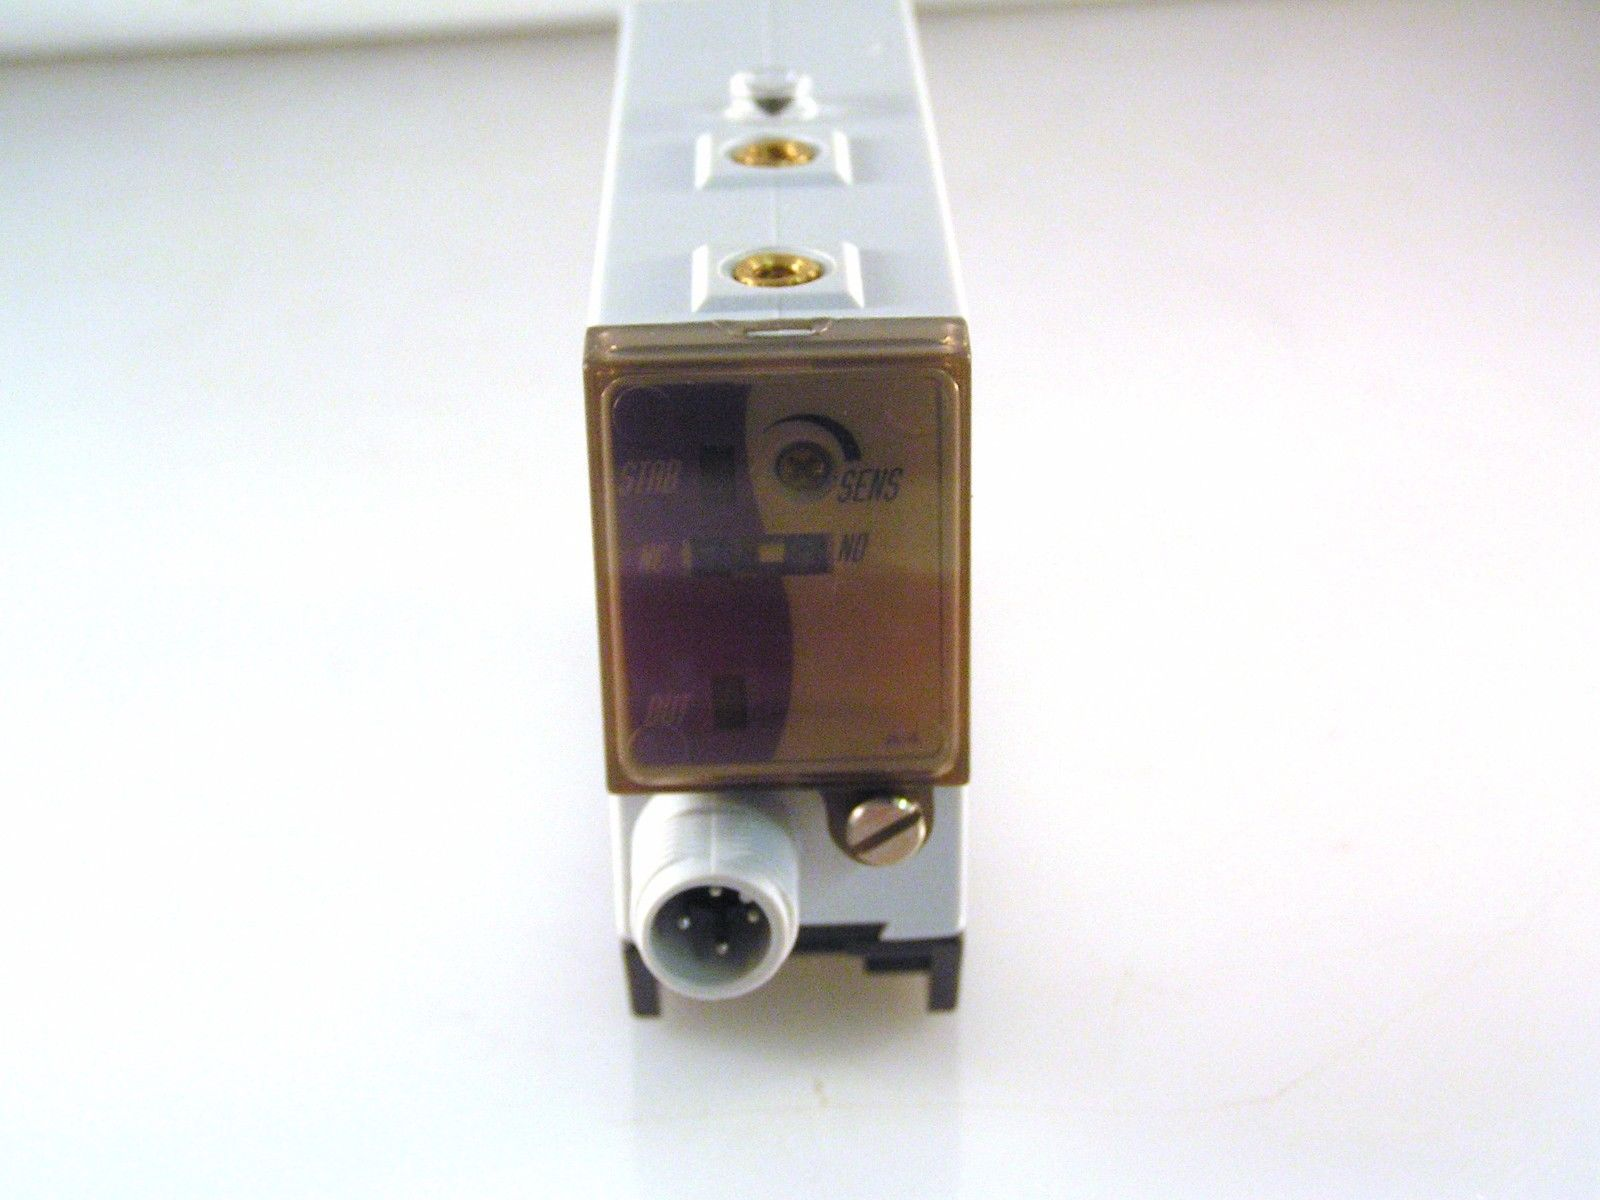 IMO Photoelectric Switch MM4//AP-1H 10-30VDC 200mm SD Diffuse Reflection MBB022a